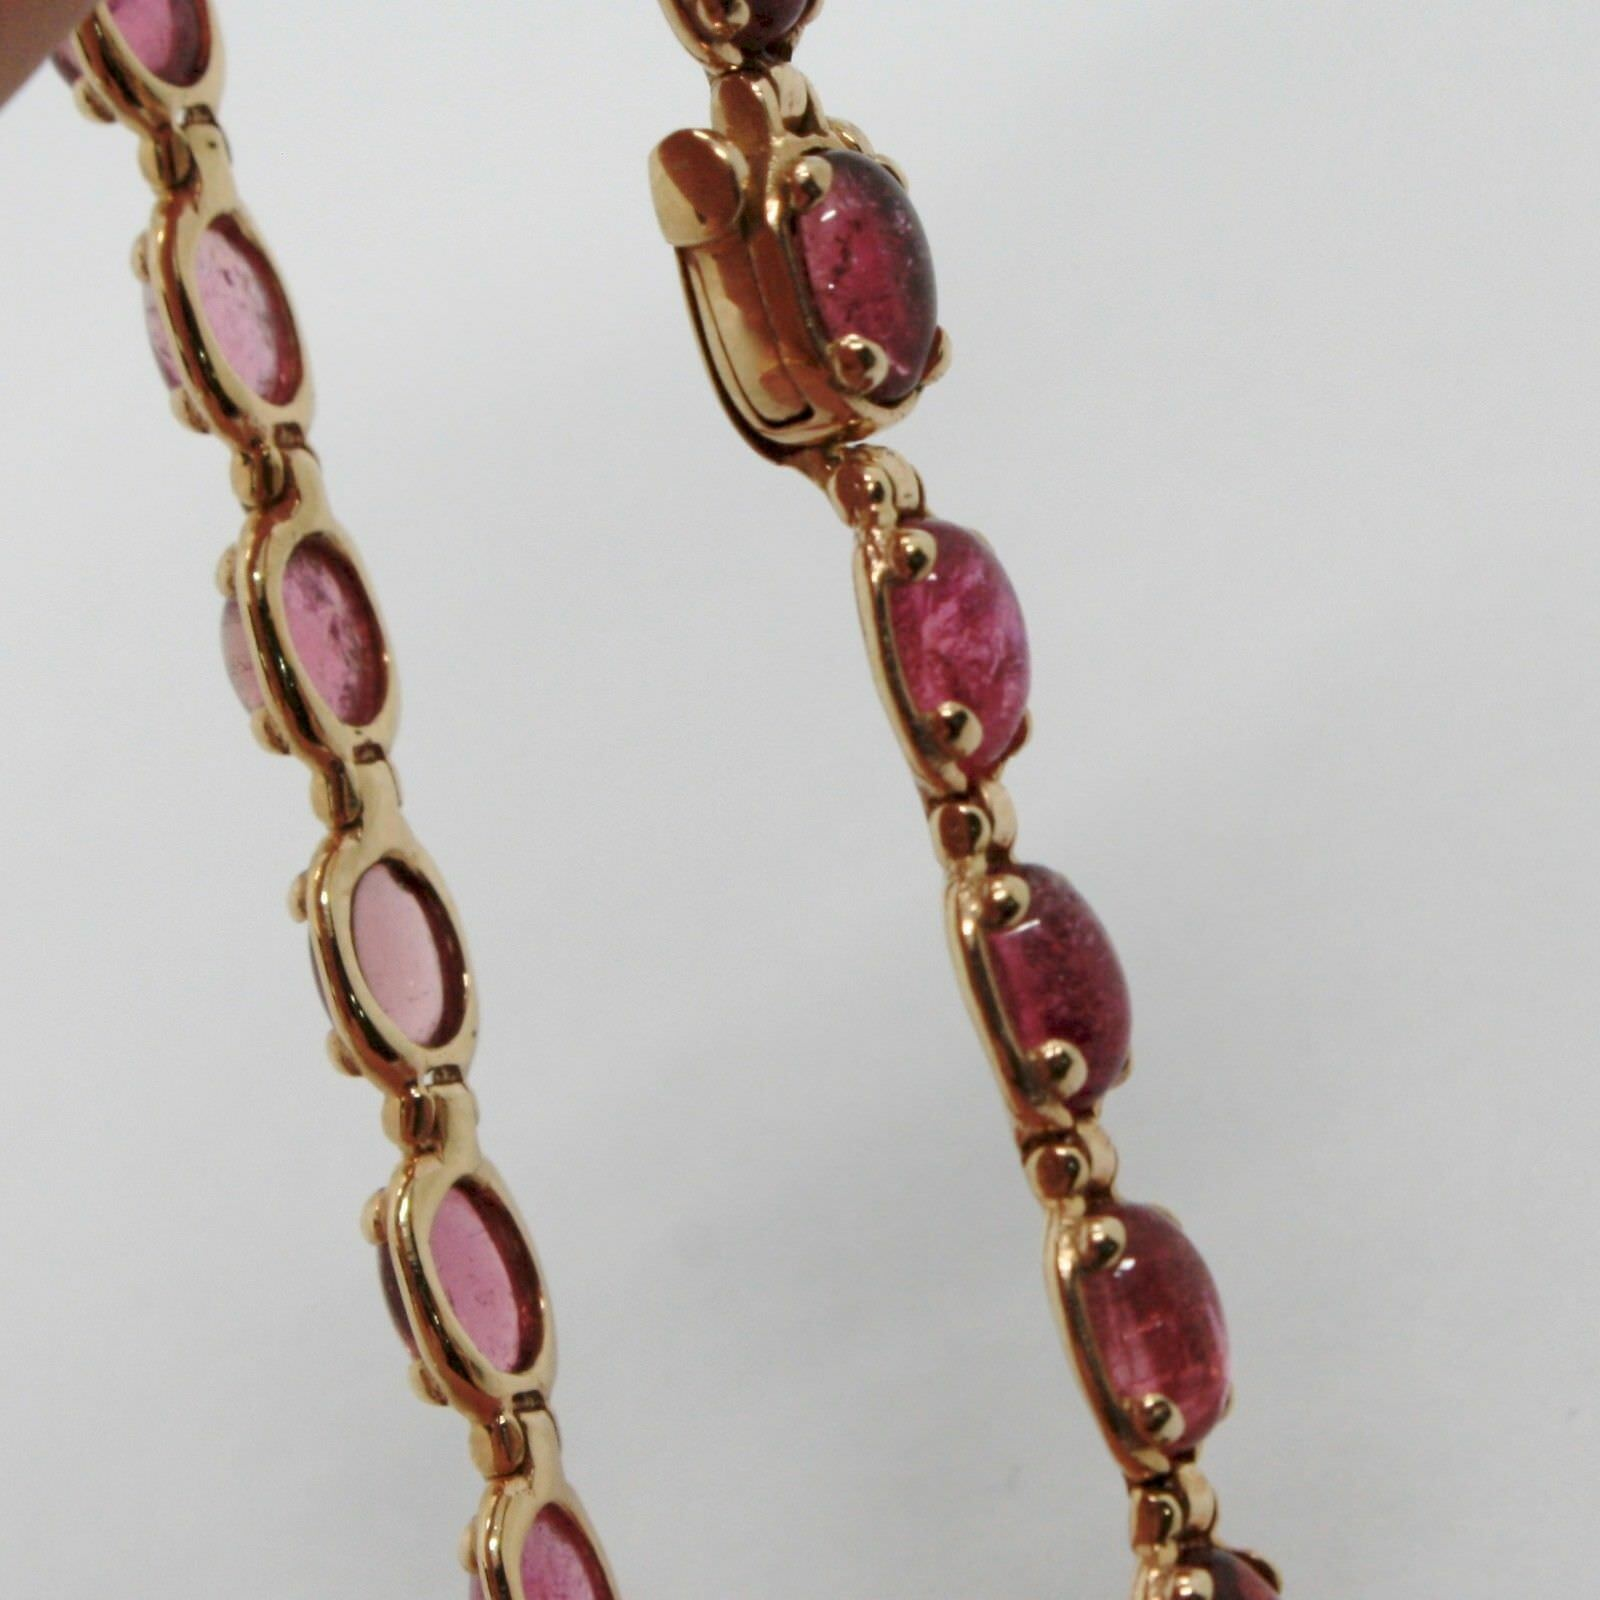 Bracelet Gold Pink 9k Type Tennis with Tourmaline Pink, Made in Italy image 4